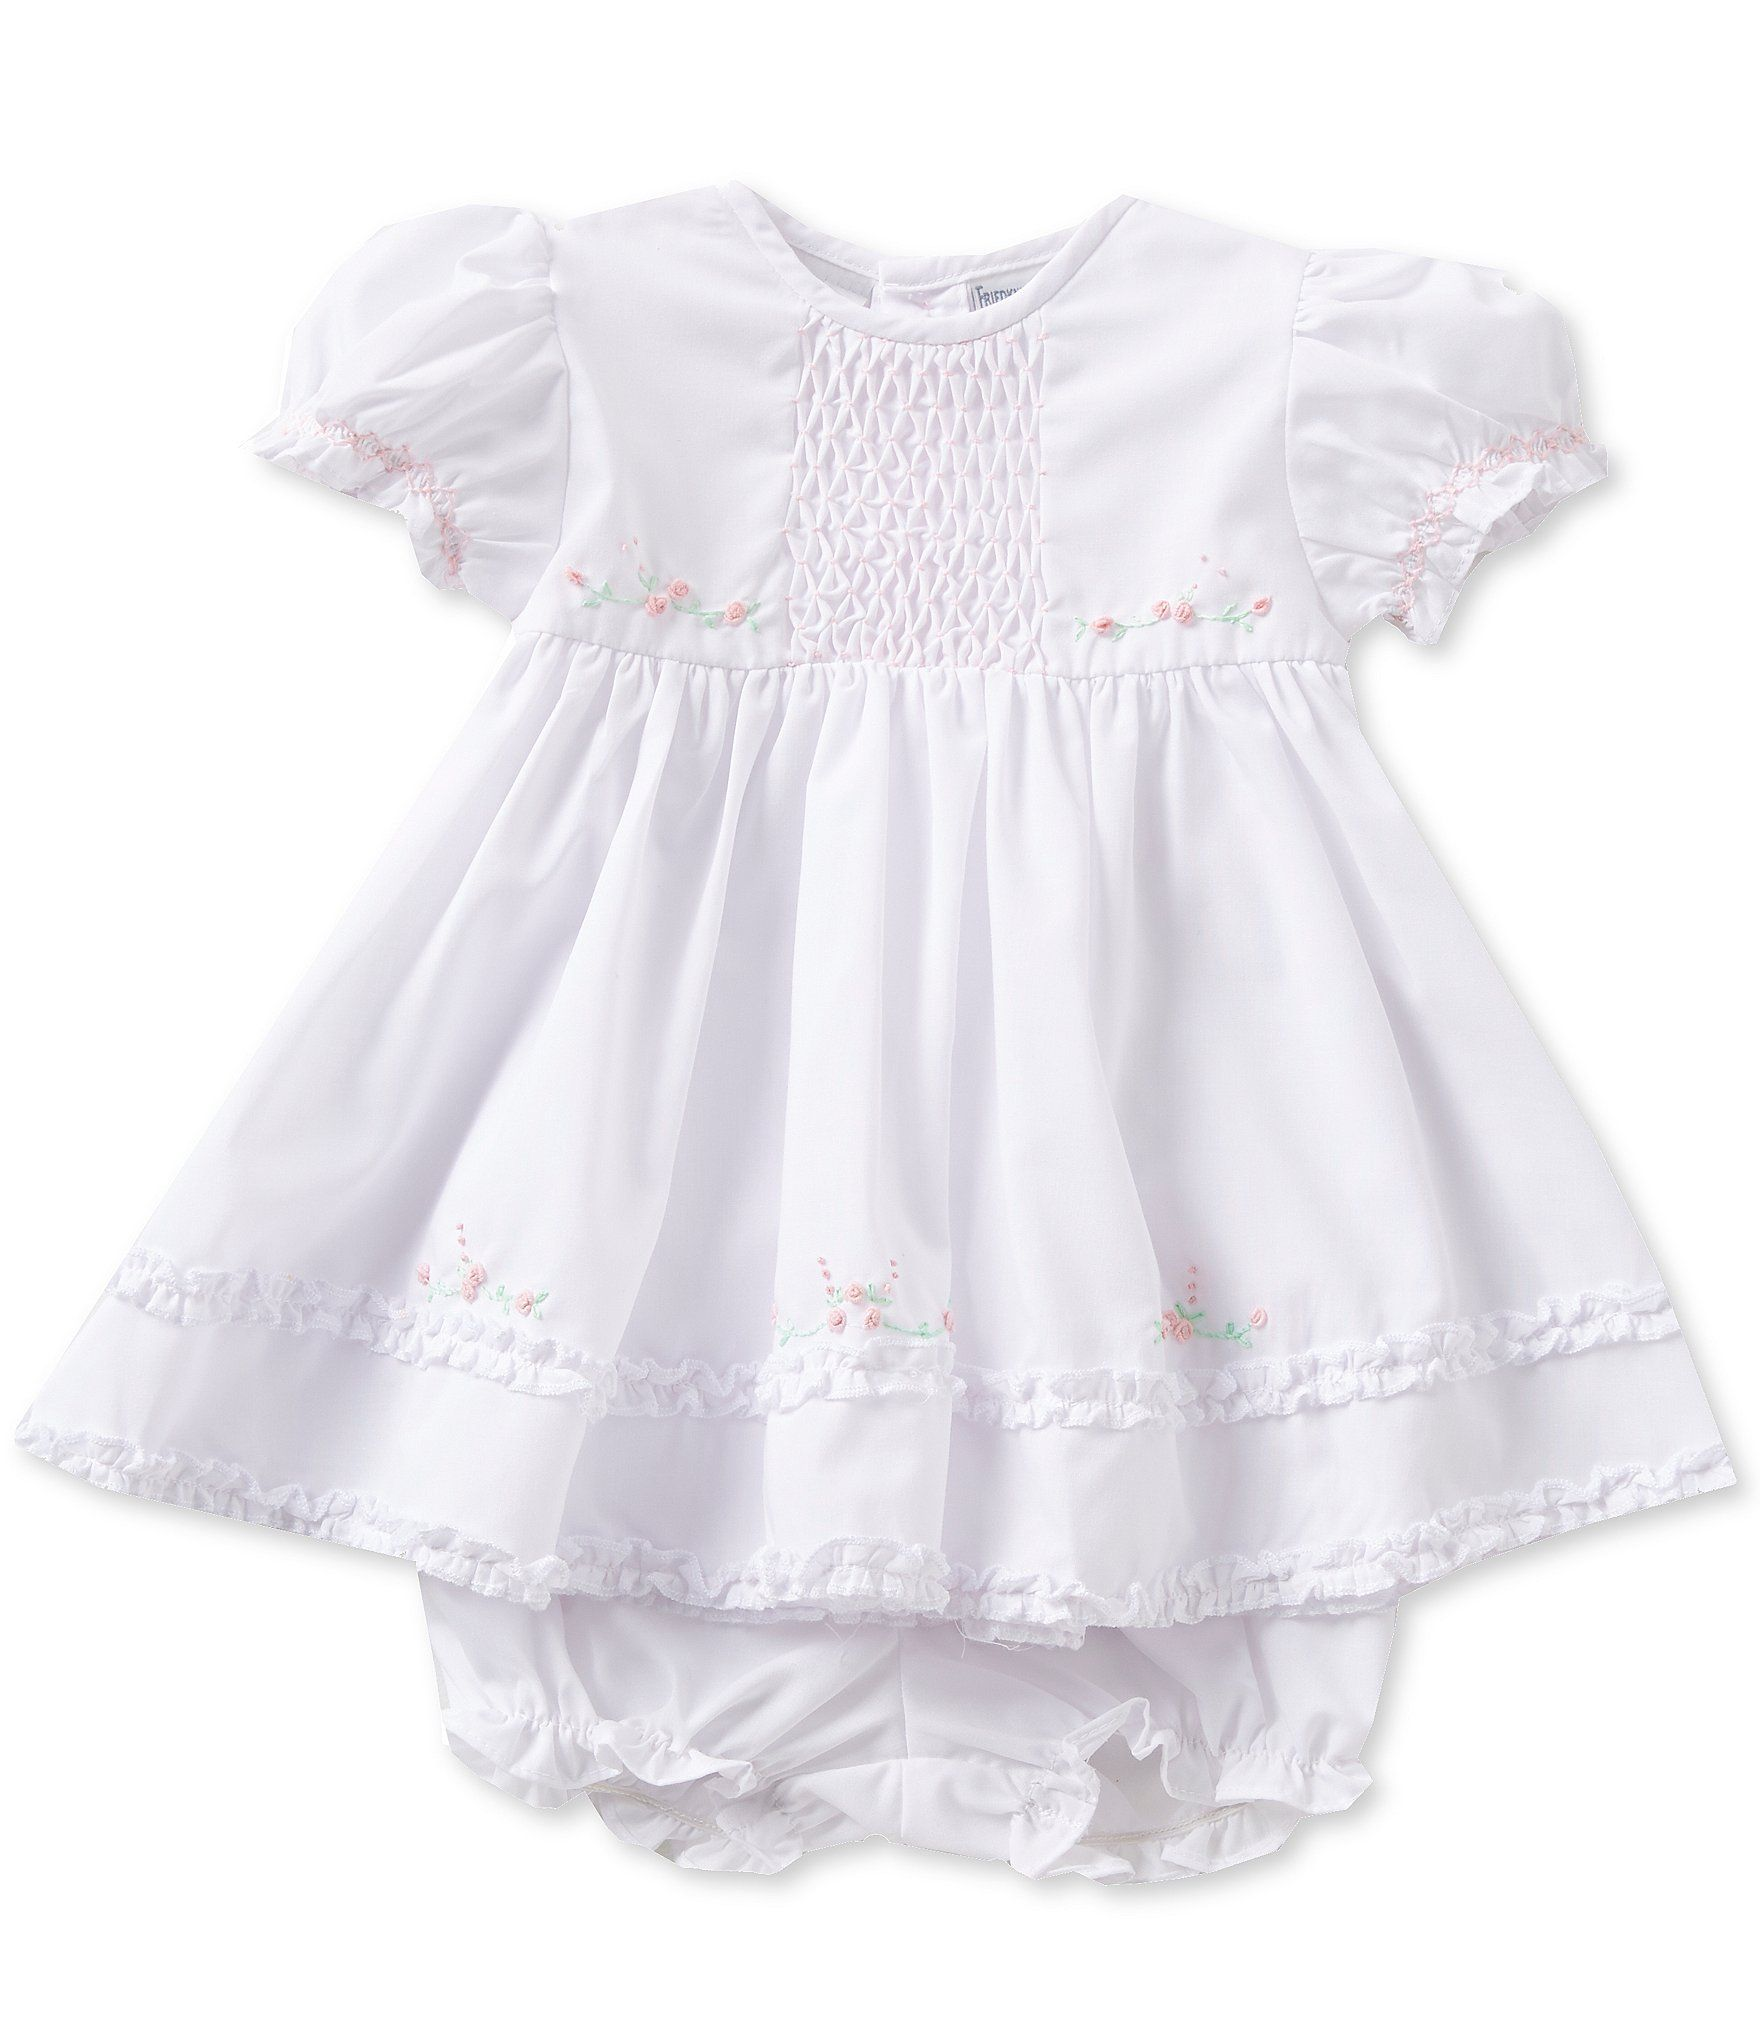 Chiffon Jumpsuit Dresses for Baby Girls 3-9 Months Baby Girl Ruffle Dress